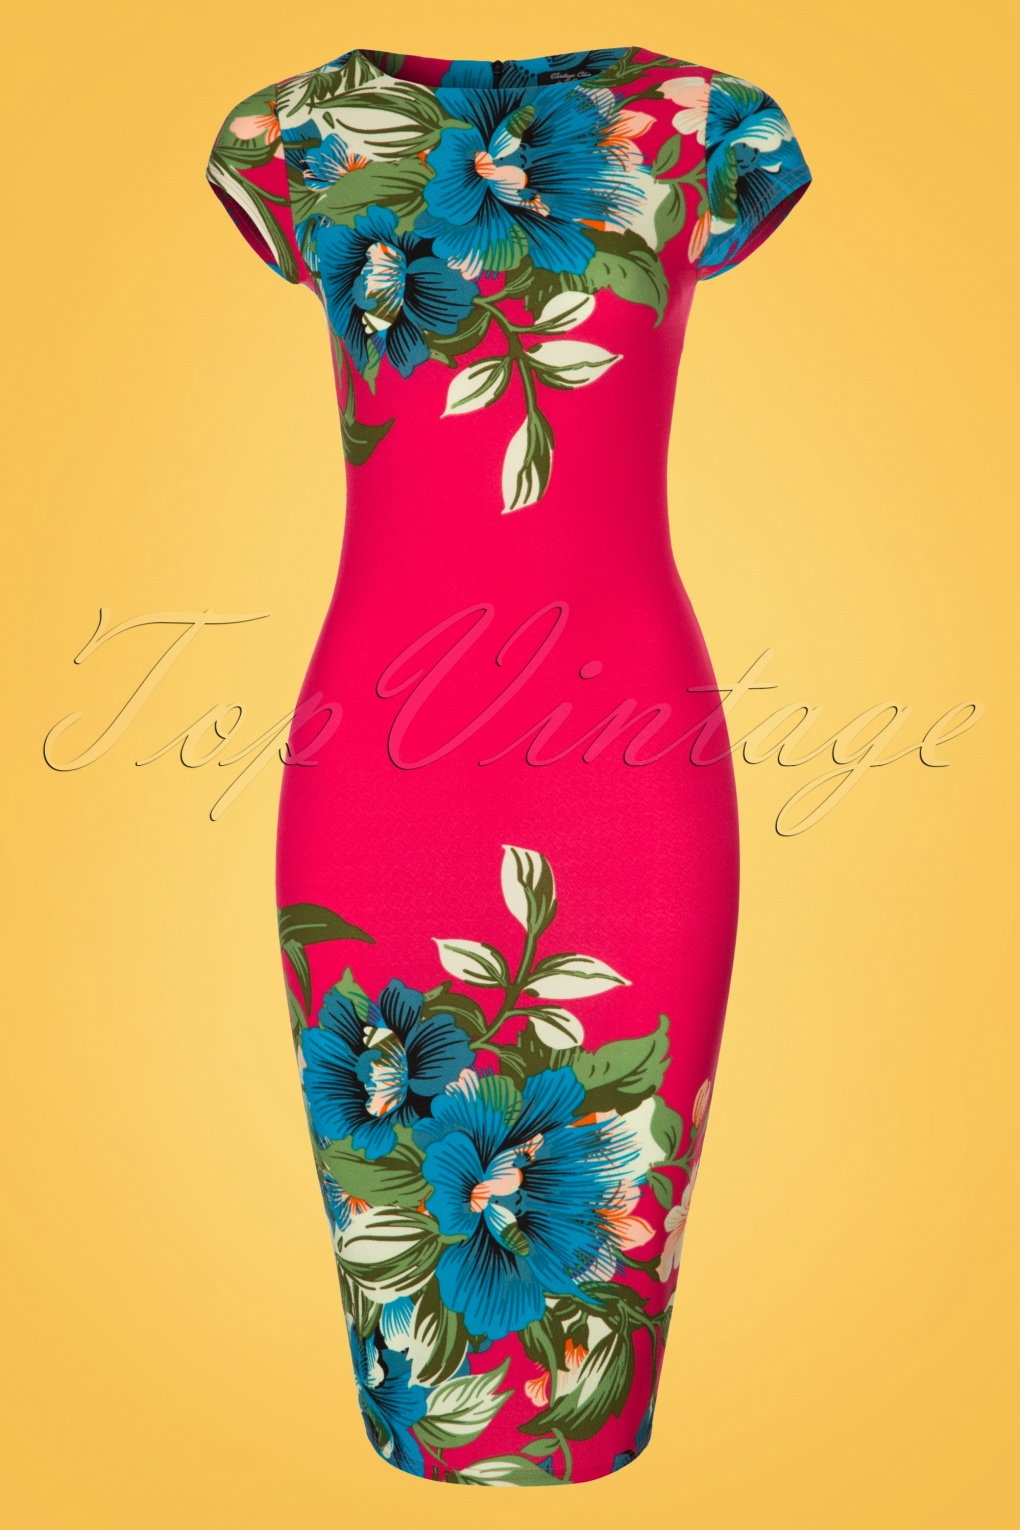 1960s Style Dresses- Retro Inspired Fashion 60s Aloha Tropical Garden Short Sleeves Pencil Dress in Hot Pink £18.04 AT vintagedancer.com